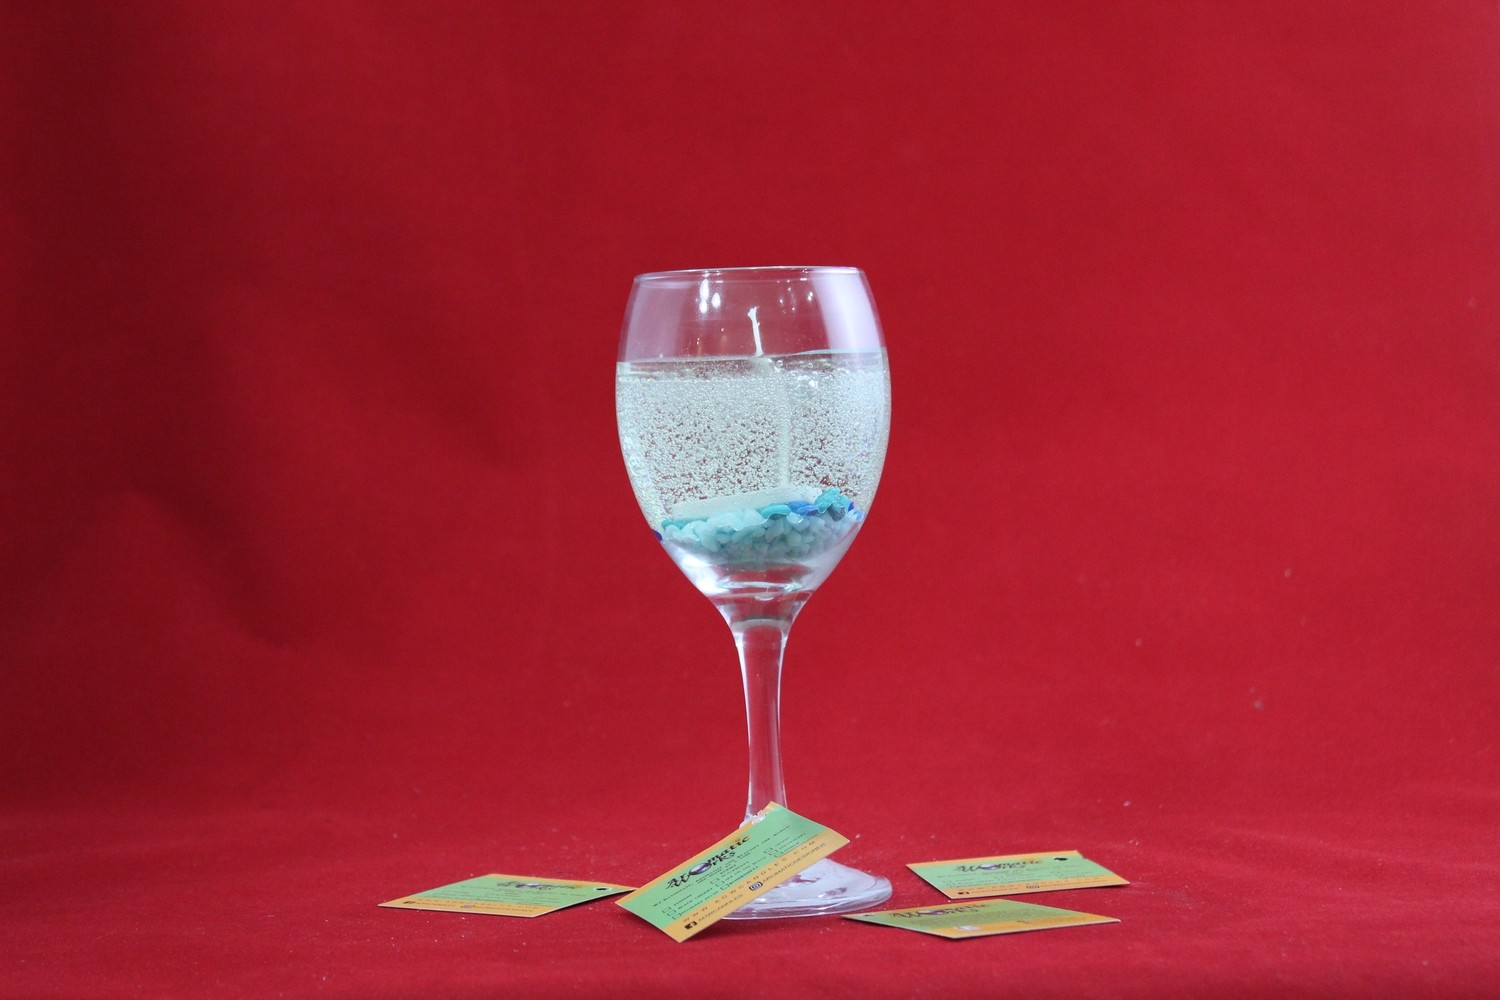 Cool Water Scented Gel Candle In Wine Glass with Dominoes Embeds